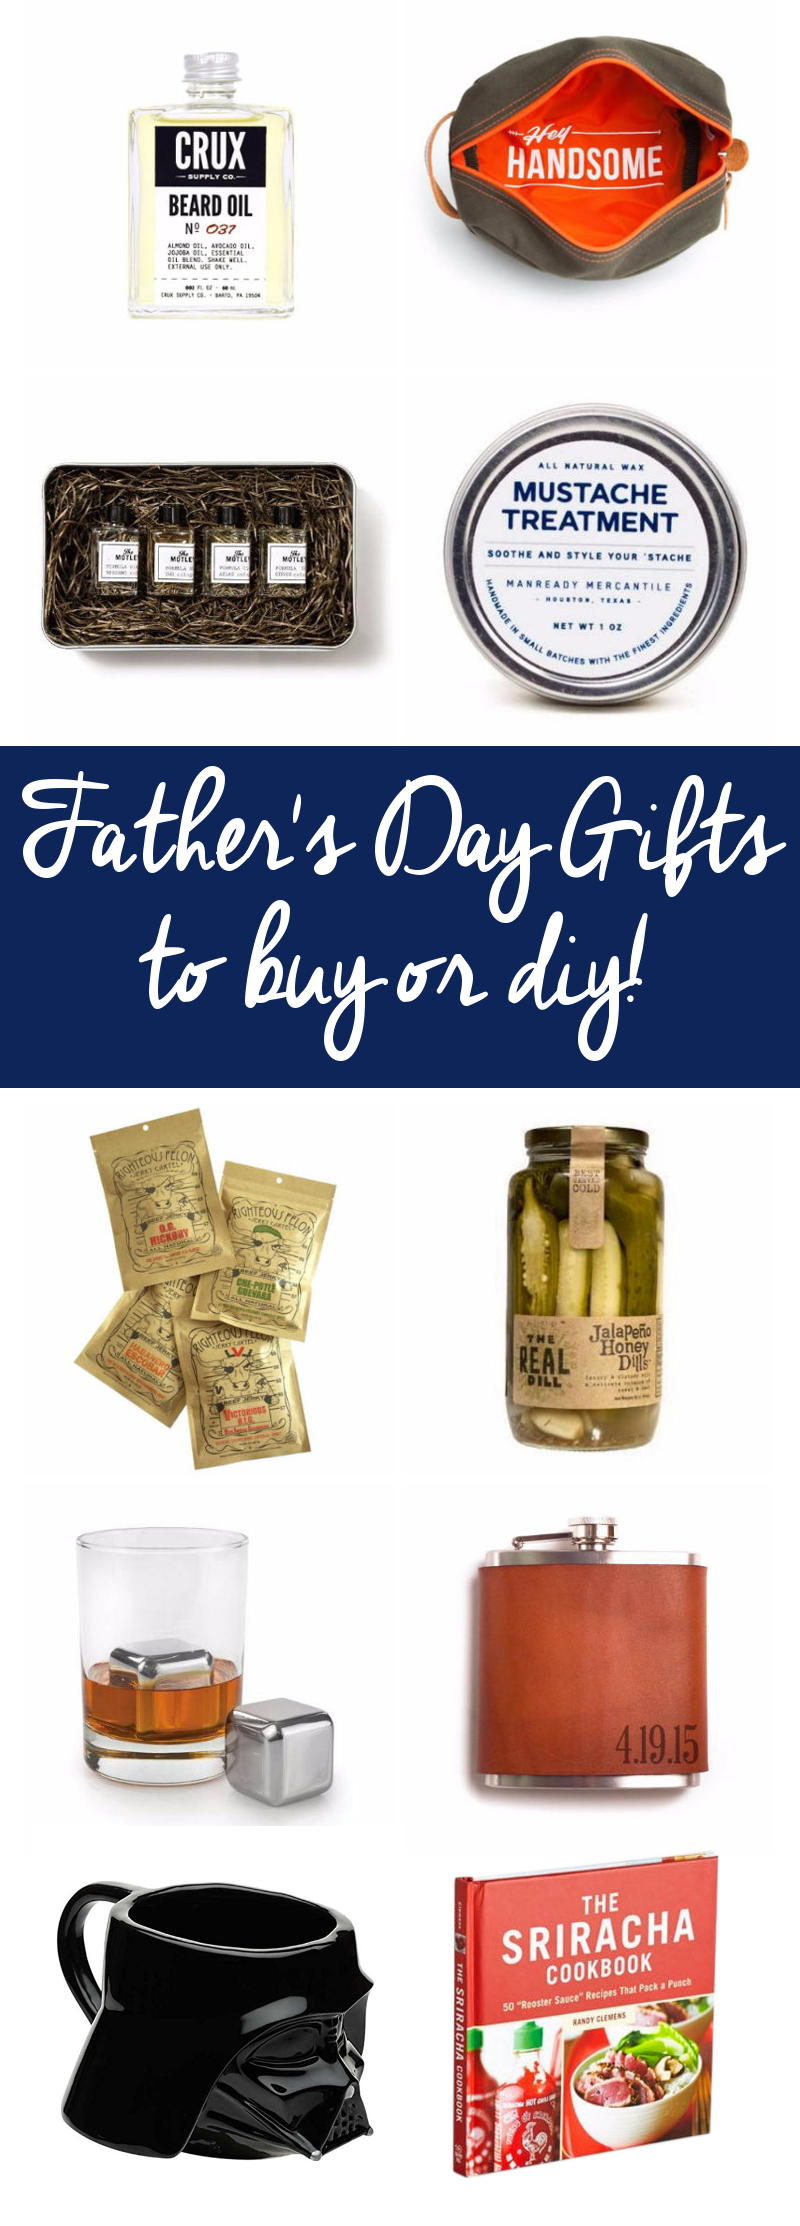 50 Father's Day gifts that you can buy or DIY! Browse these fantastic Father's Day gift ideas for the perfect Father's Day gift for Dad!